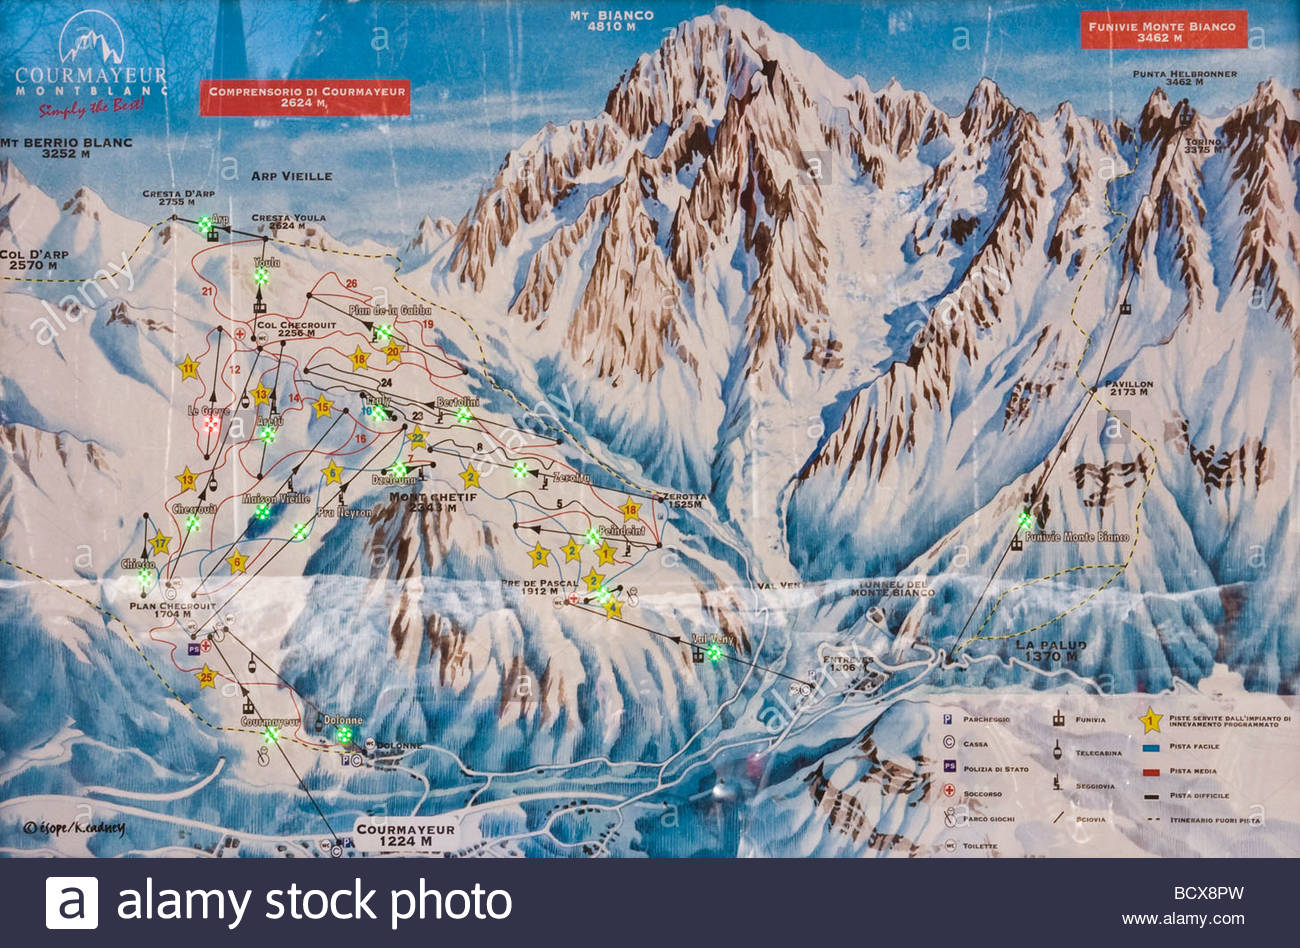 map, monte bianco, valle d'aosta, italy - Stock Image